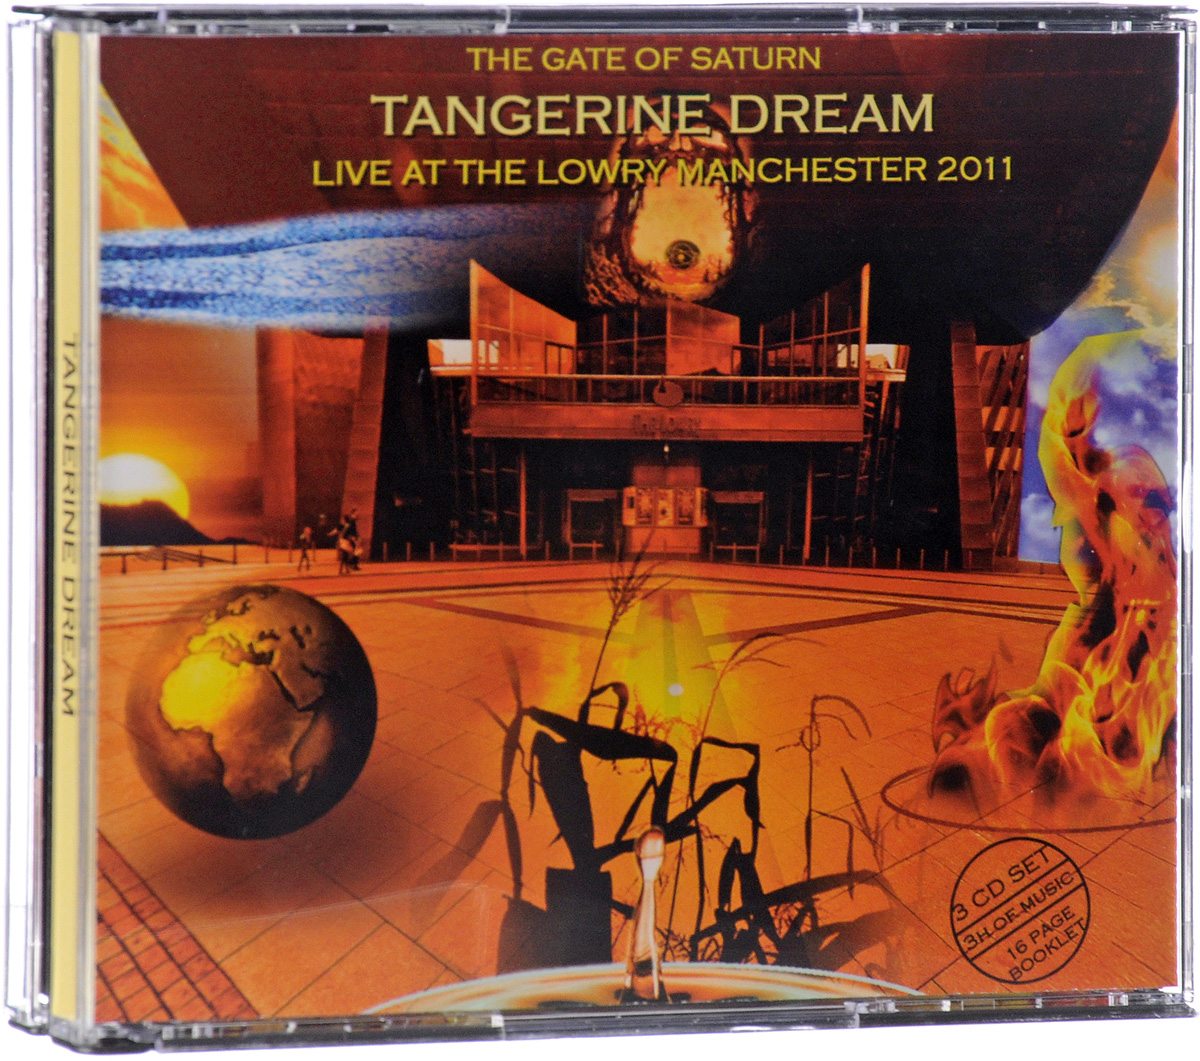 Tangerine Dream. The Gate Of Saturn (Live At The Lowry Manchester 2011) (3 CD)